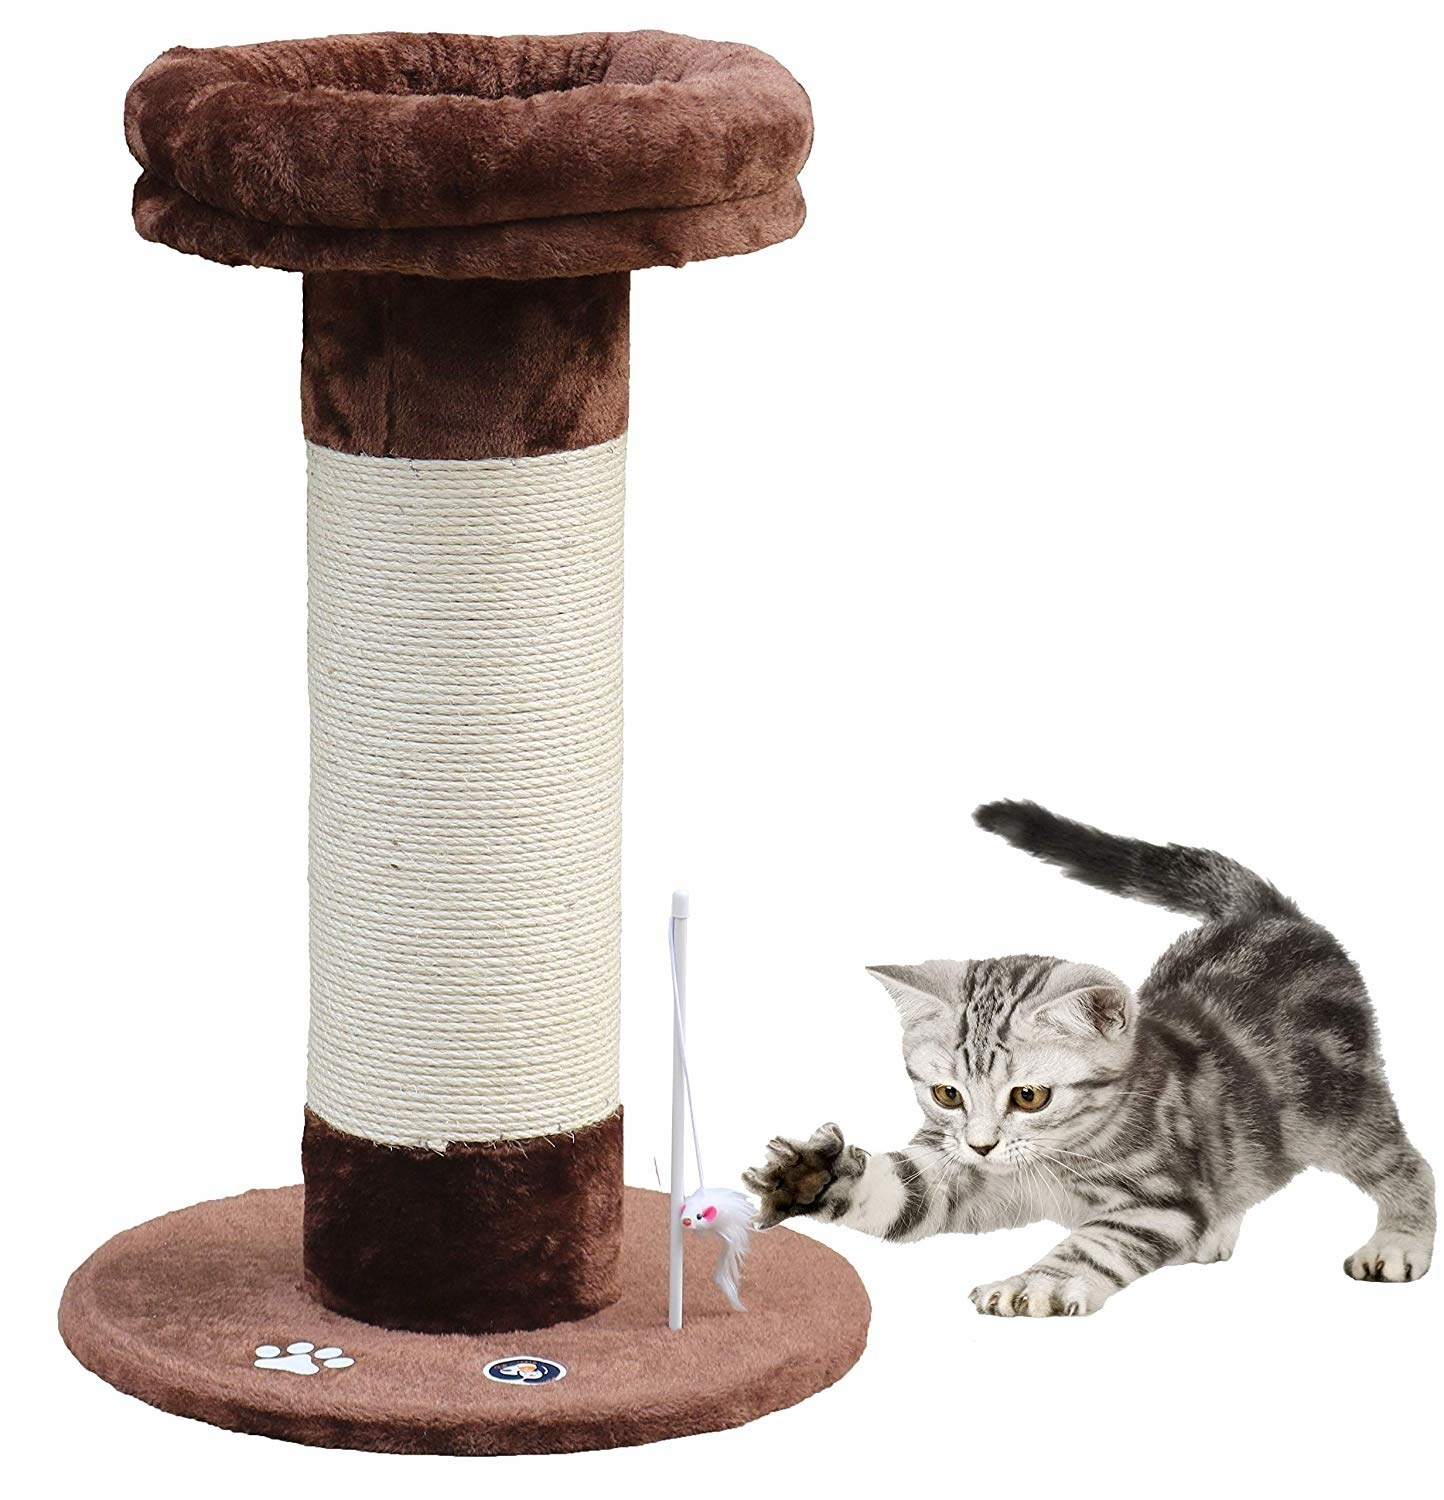 Cat playing with the toy attached to the scratching post.